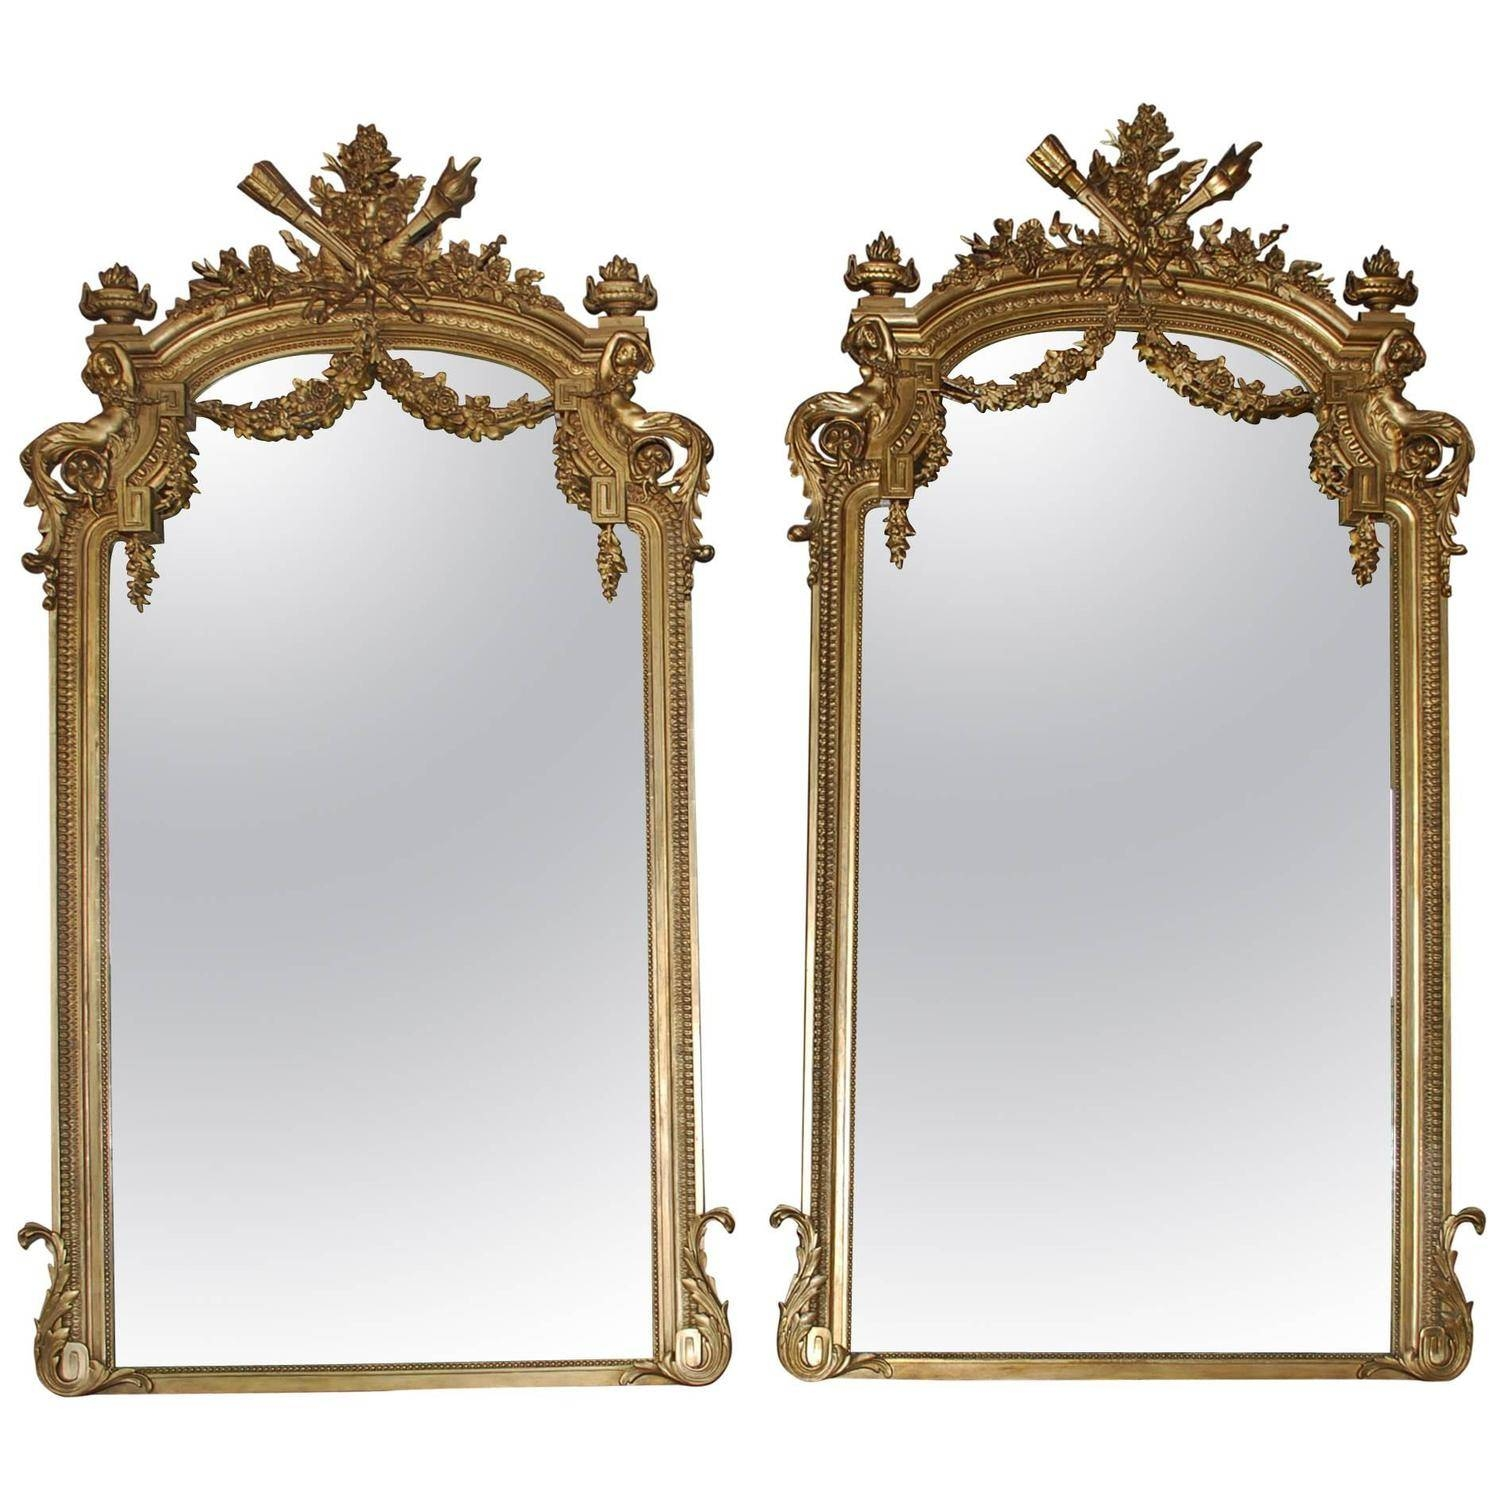 Pair Of 19Th Century Large Gold Gilded Mirror At 1Stdibs with Antique Gilded Mirrors (Image 24 of 25)